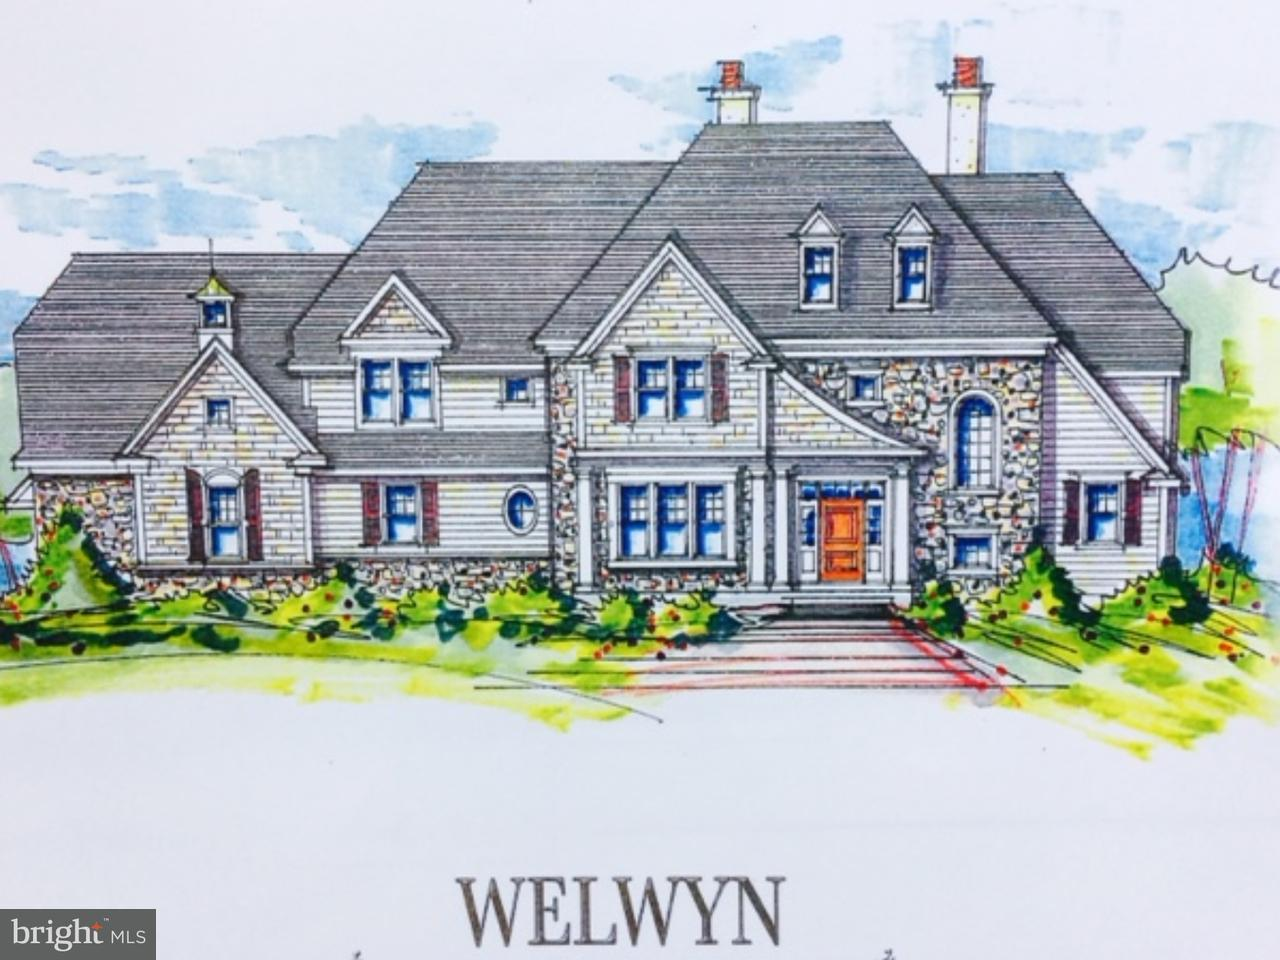 Single Family Home for Sale at 11 WELWYN Road Wayne, Pennsylvania 19087 United States